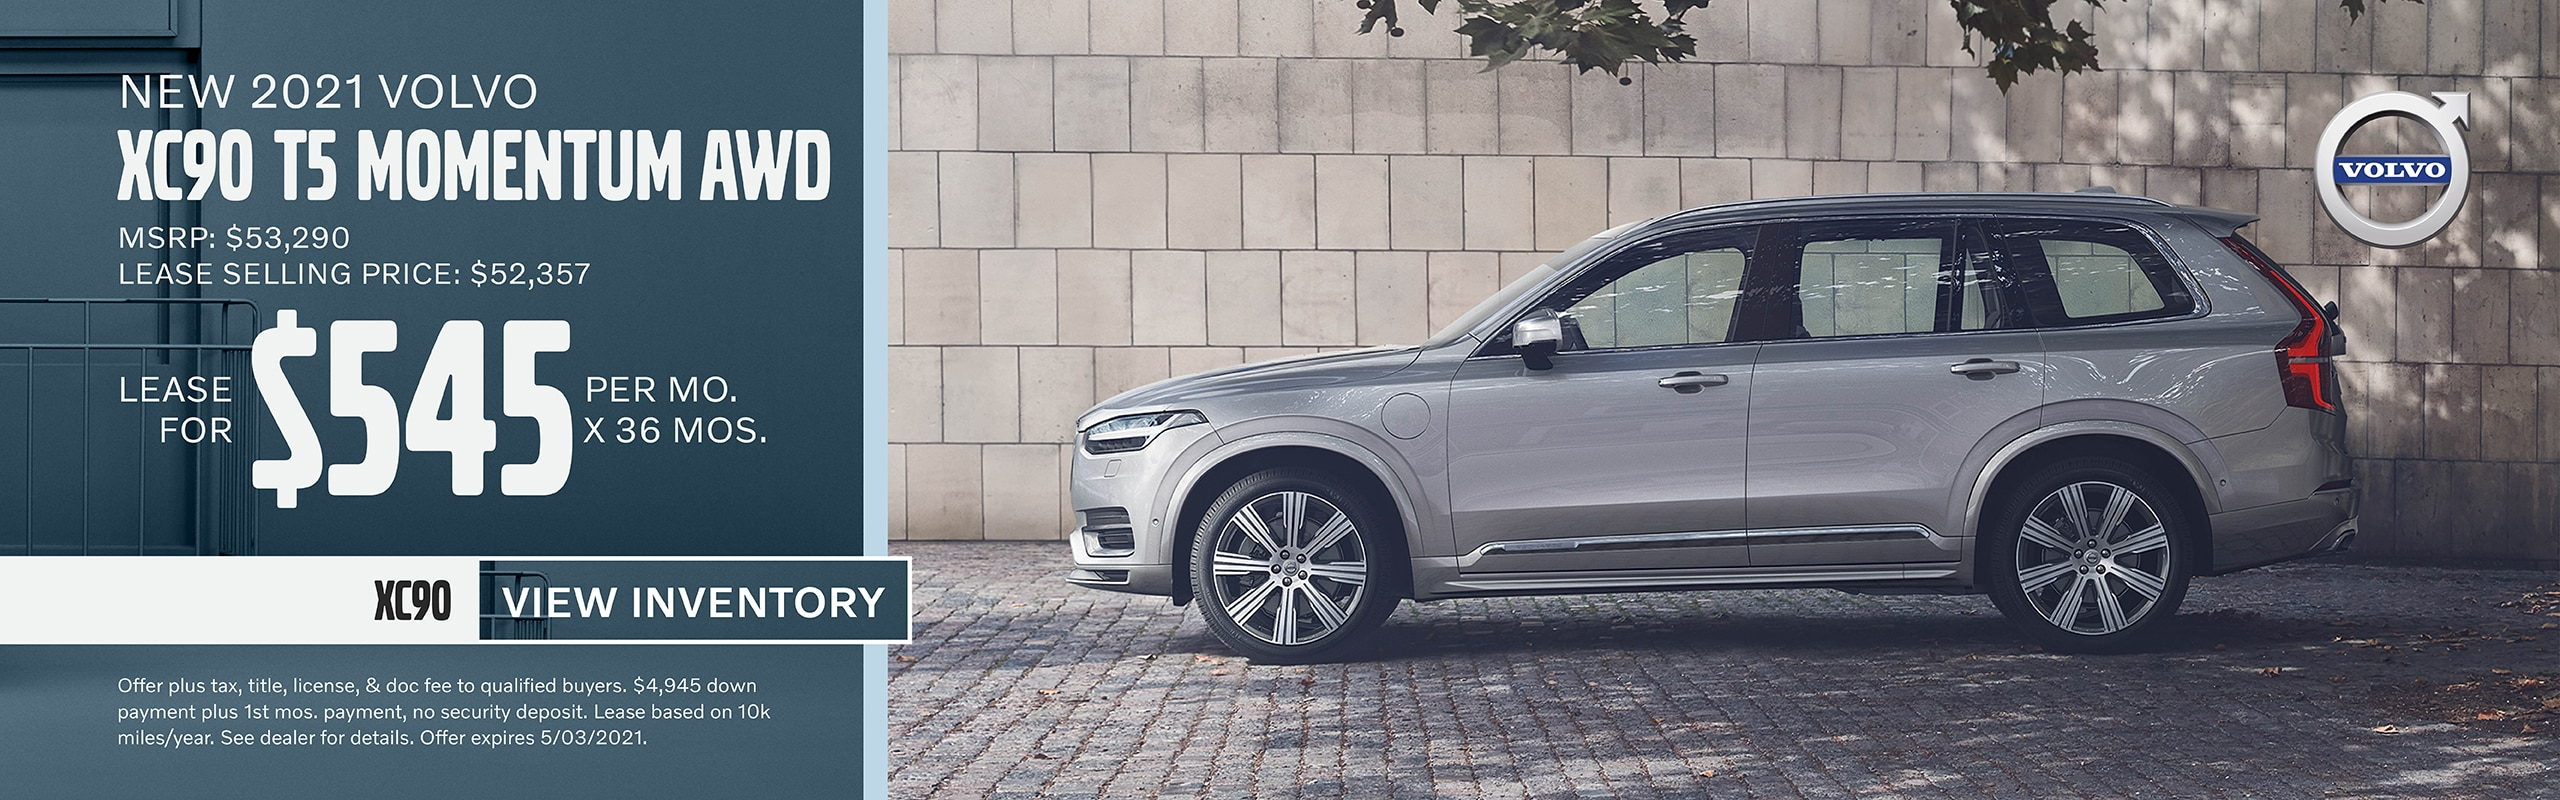 2021 Volvo XC90 Lease Offer | Moline, IL